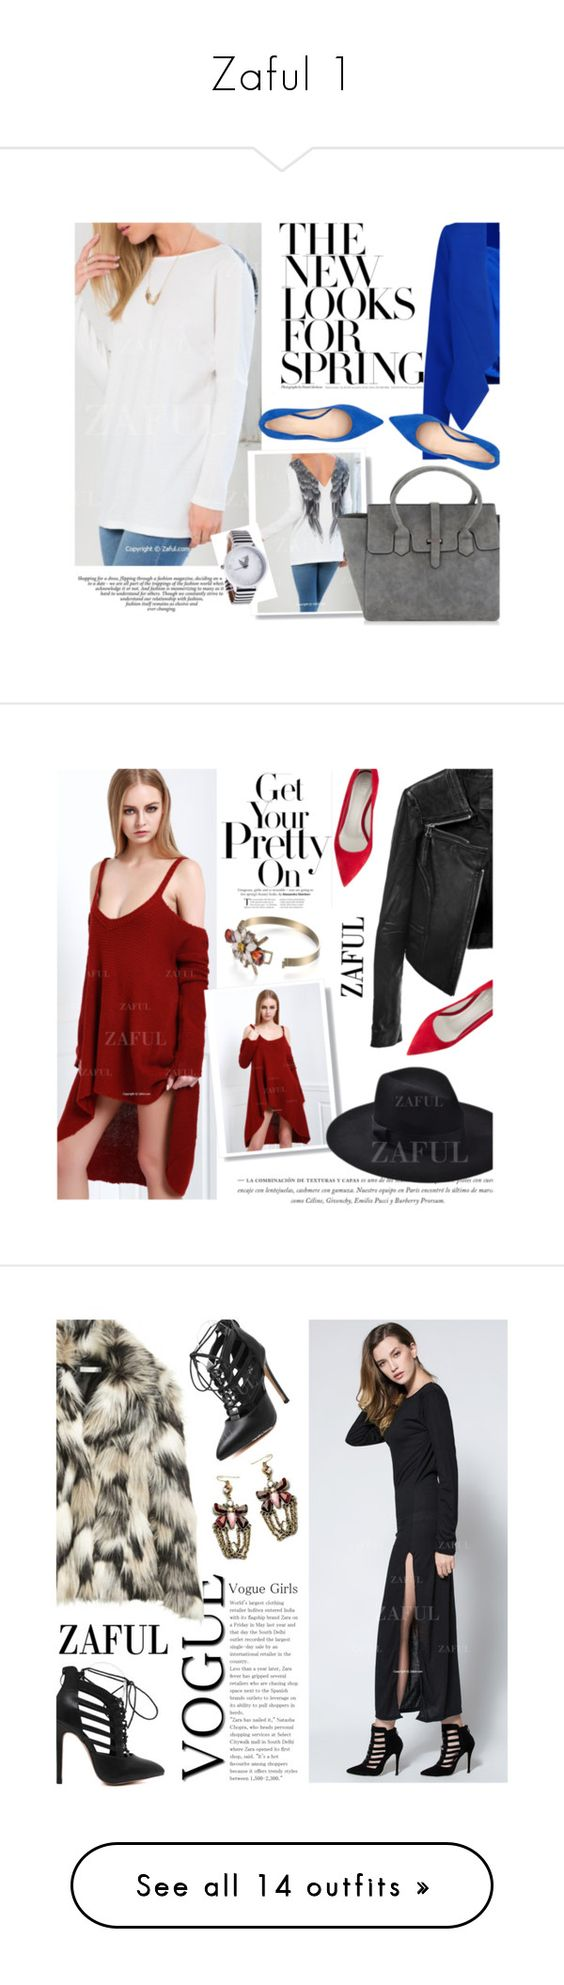 """""""Zaful 1"""" by merima-kopic ❤ liked on Polyvore featuring zaful, Milly, Nine West, women's clothing, women, female, woman, misses, juniors and Linea Pelle"""